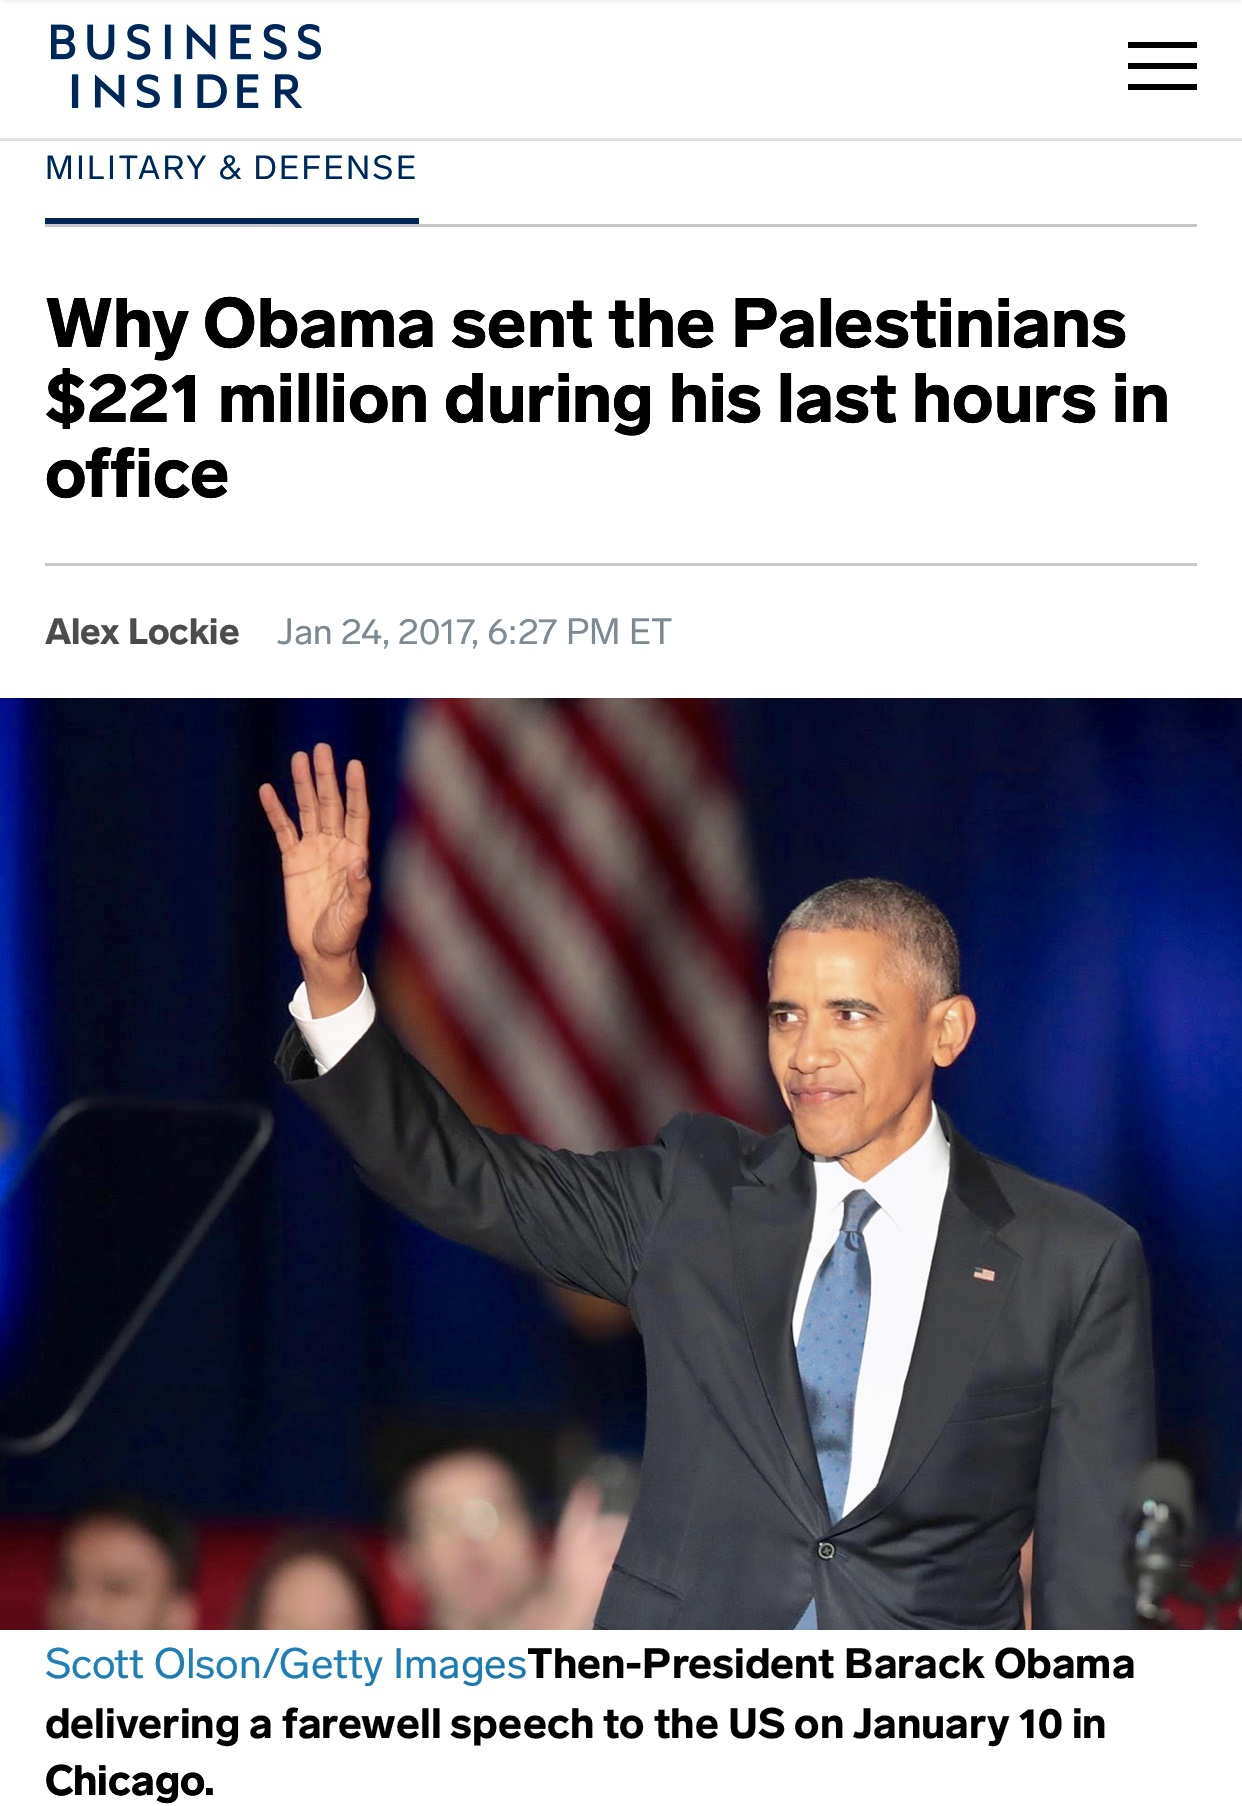 Why Obama sent Palestinians $221 million in his last hours in office